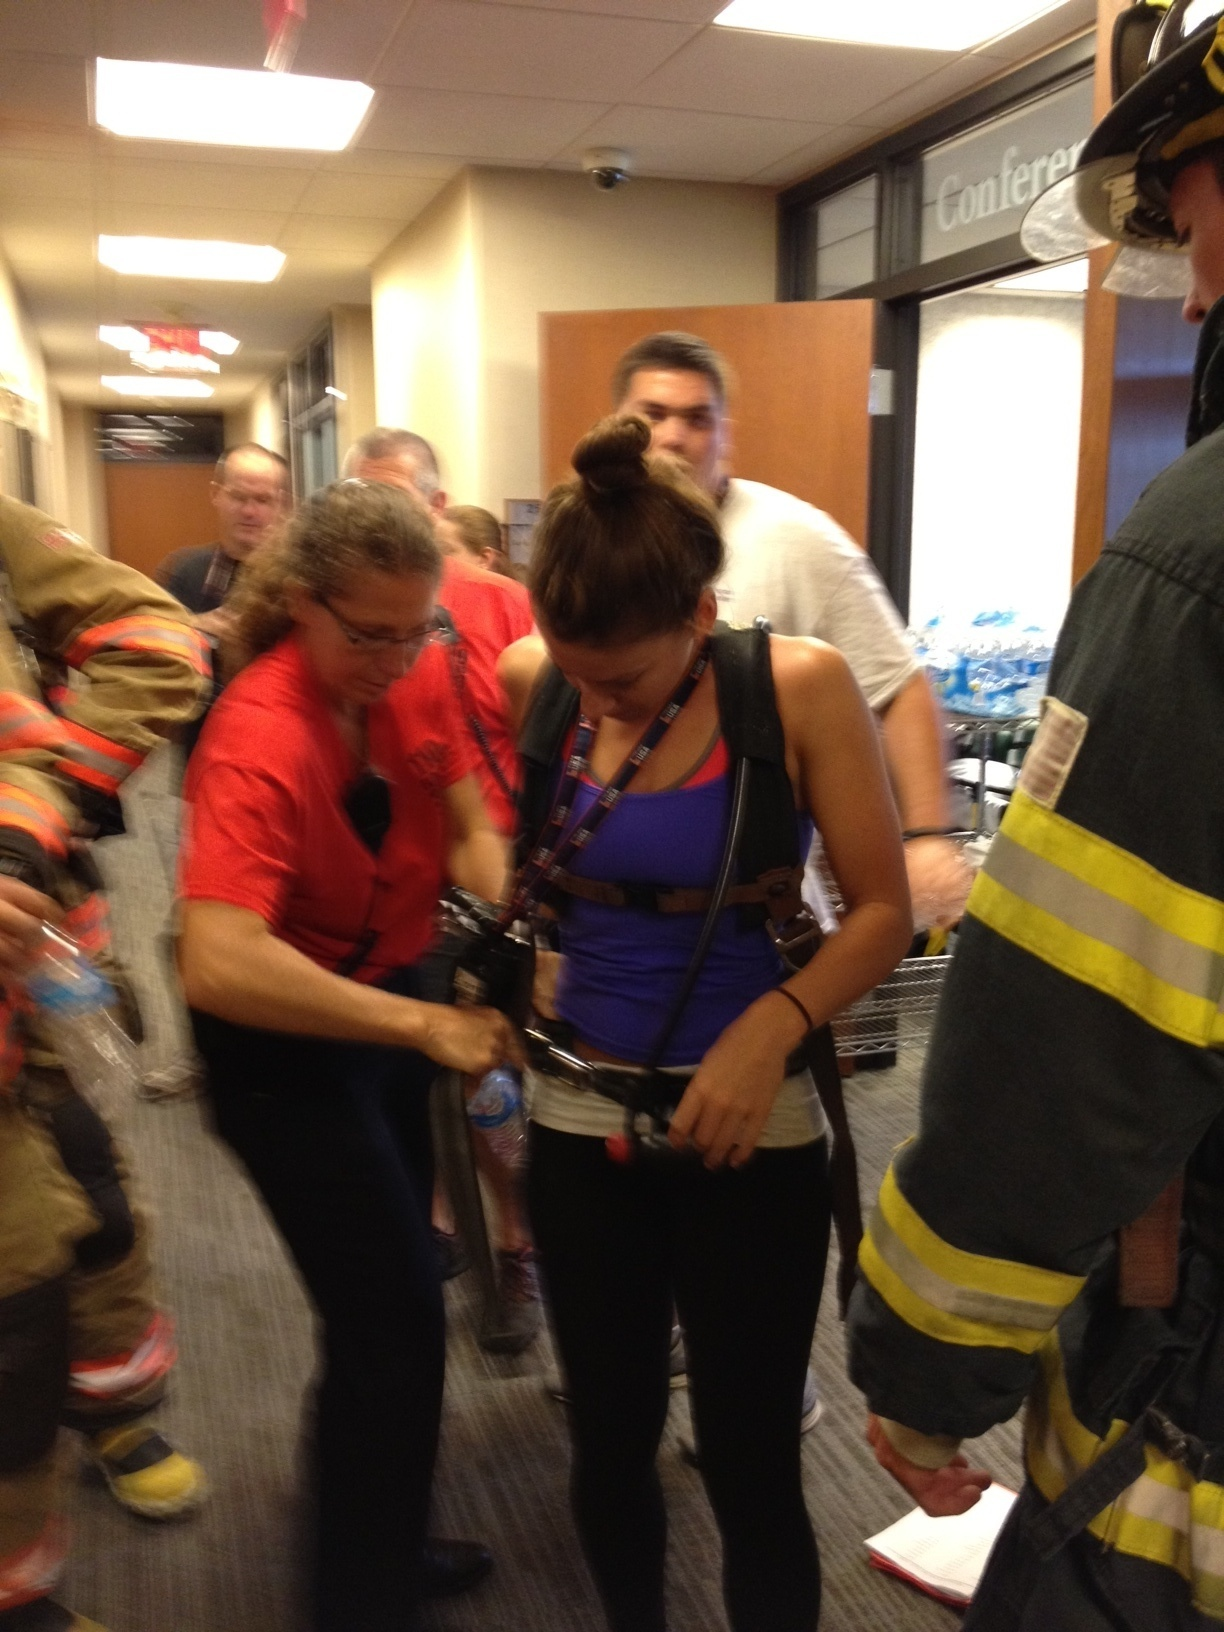 9-11 Memorial Stair Climb Ten